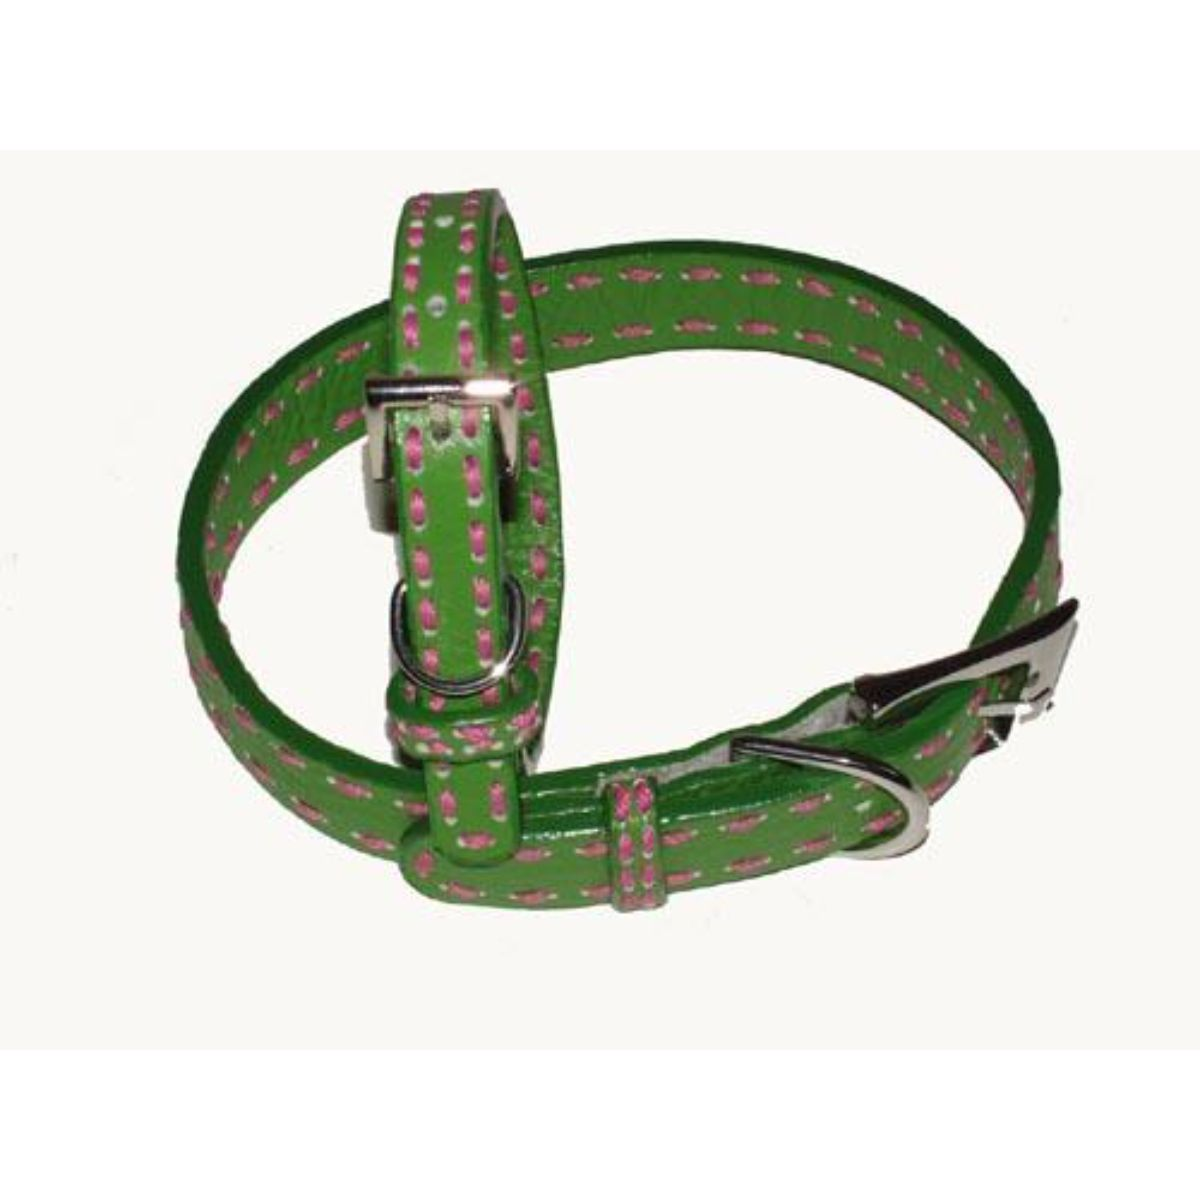 A Pets World 03011303-14 Leather Dog Collar- Green-Hot Pink Saddle Stitch